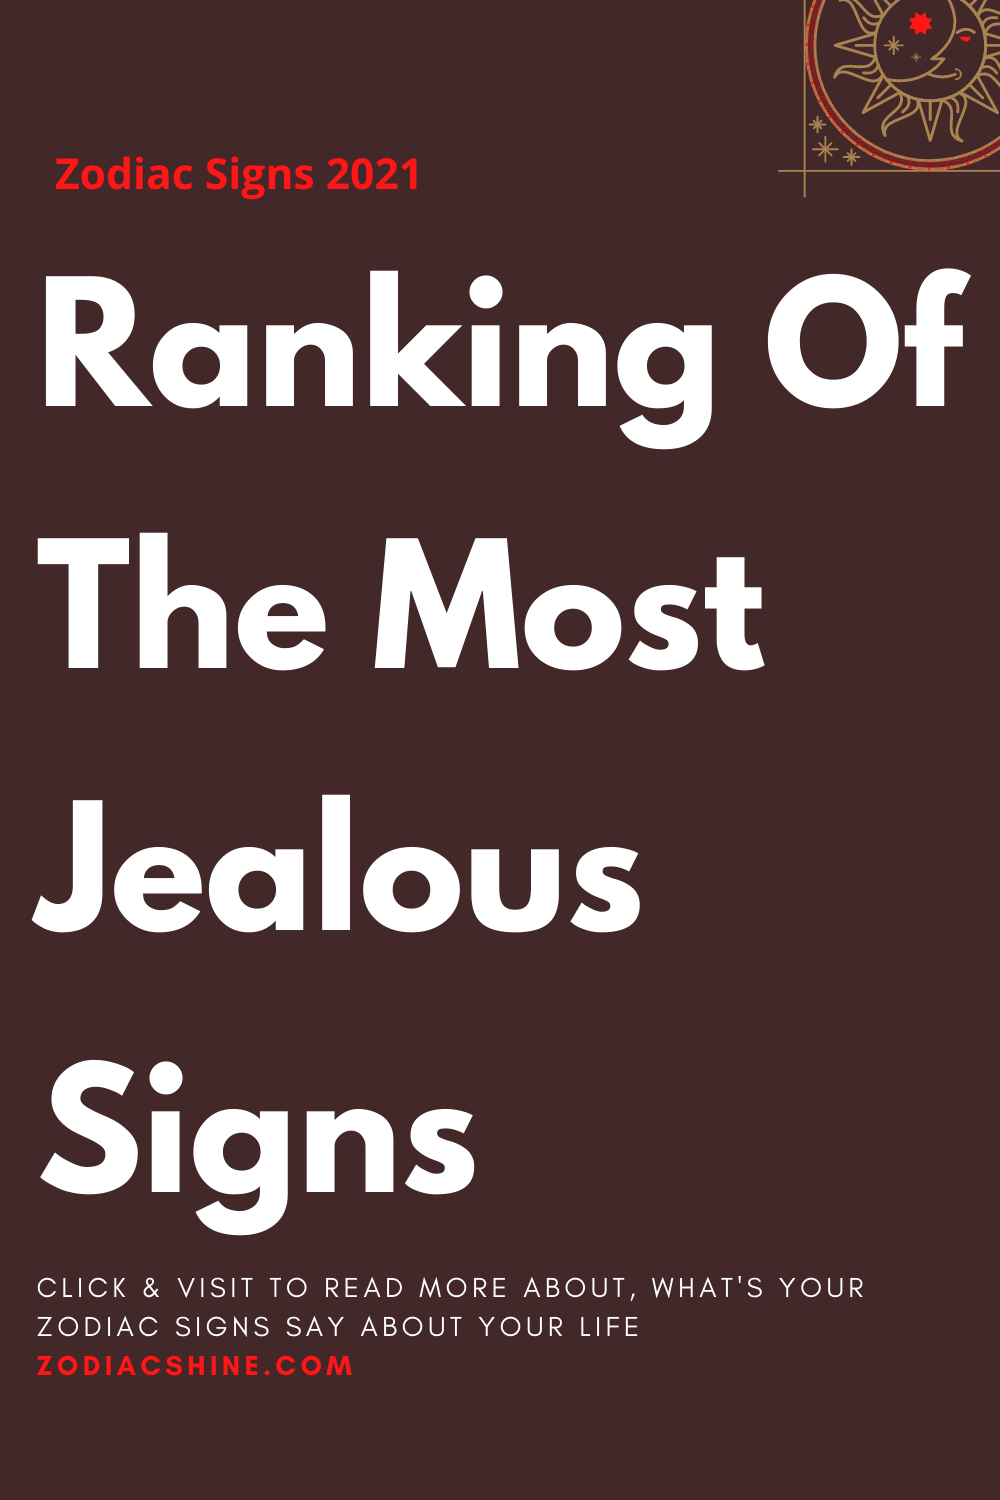 Ranking Of The Most Jealous Signs